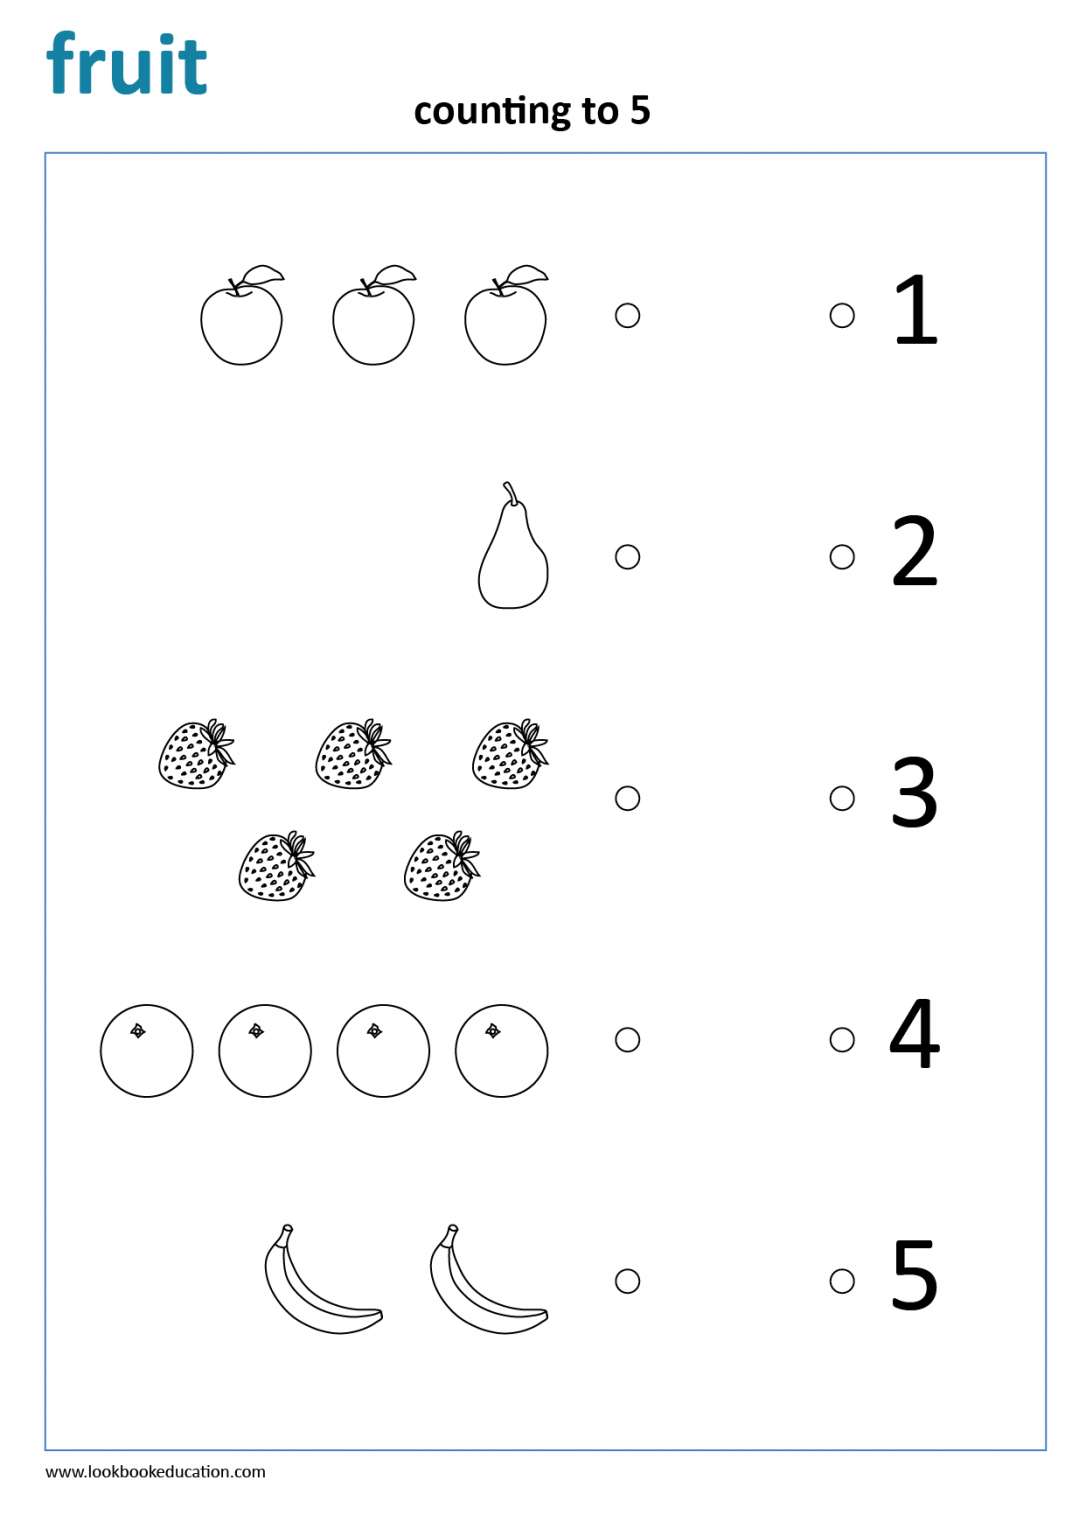 Worksheet Counting To 5 Fruit In